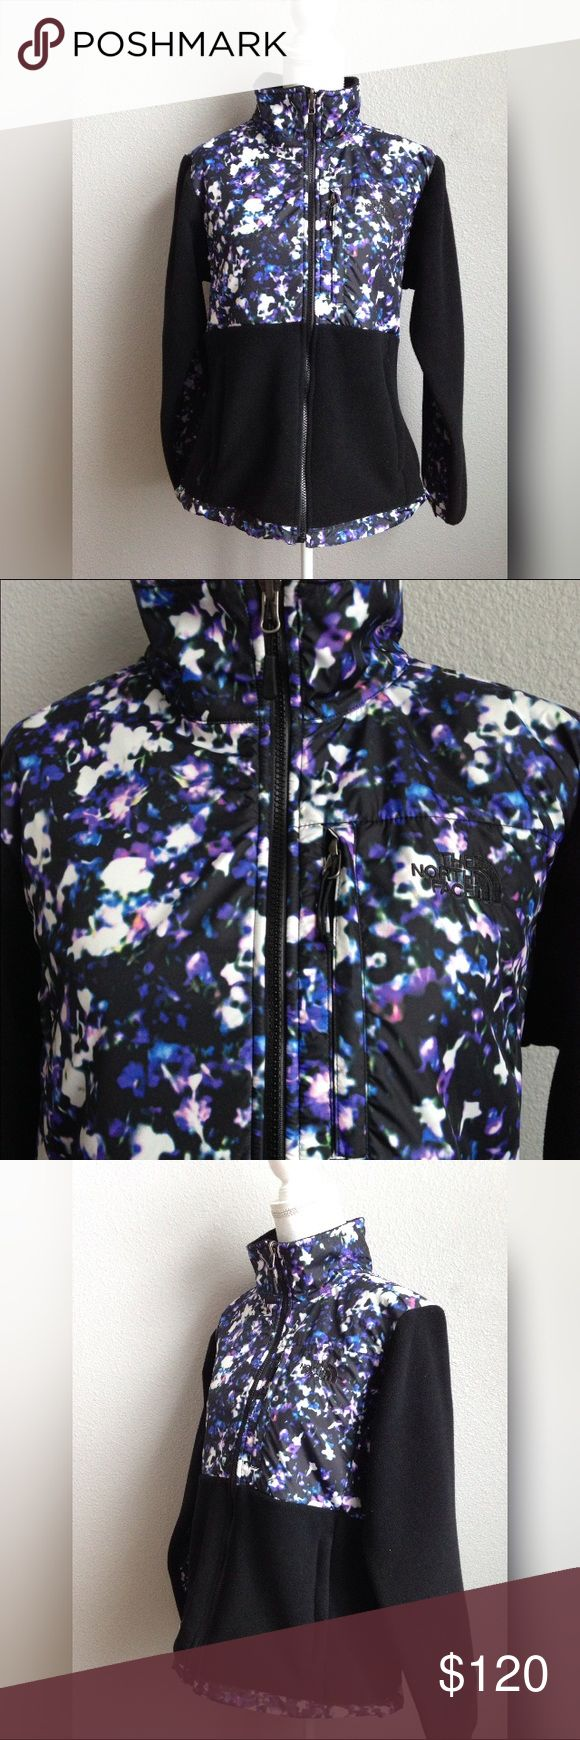 "The North face Black Floral Crystal Fleece Zip Up The North Face Women's Denali Fleece Zip Up Sweater Jacket  Size Large MSRP $179  Measurements laying flat: 22"" pit to pit x 26"" length  Floral Crystal print  Polyester fleece, extremely warm material perfect for outdoor activities  Style: Denali, classic full zip fleece jacket with nylon panel detailing throughout    Please message me if you have any questions  Thank you! The North Face Jackets & Coats"